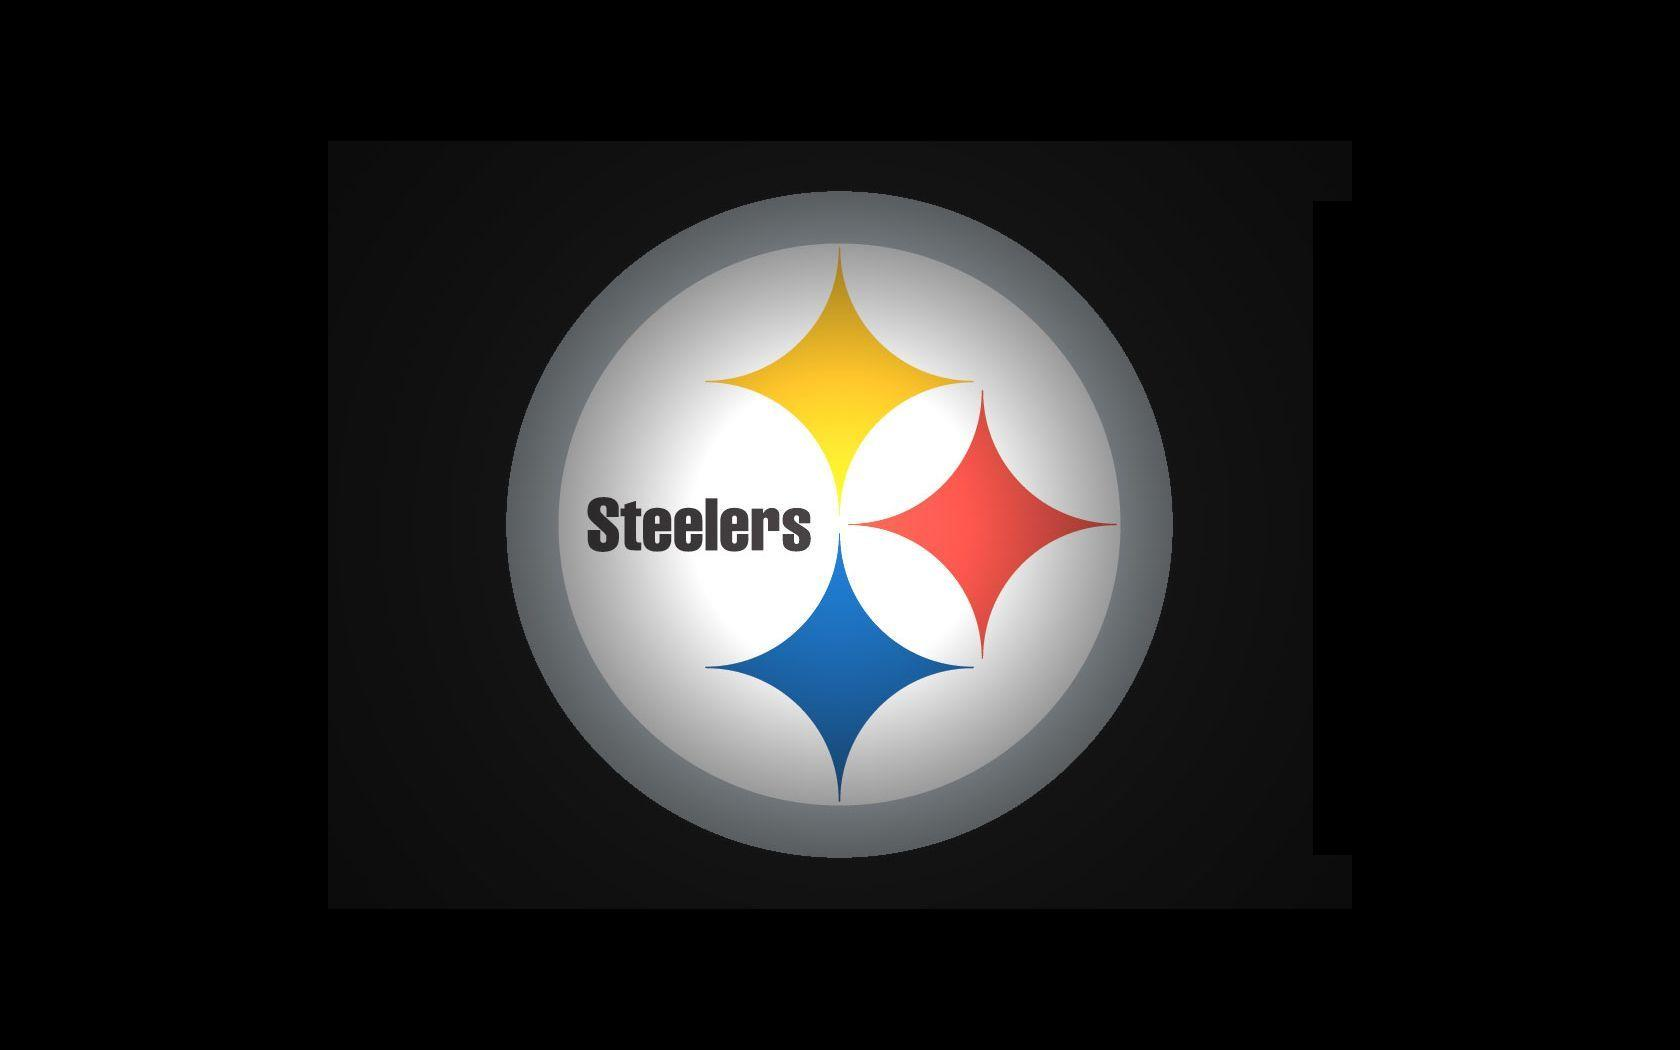 New Pittsburgh Steelers wallpaper background | Pittsburgh Steelers ...